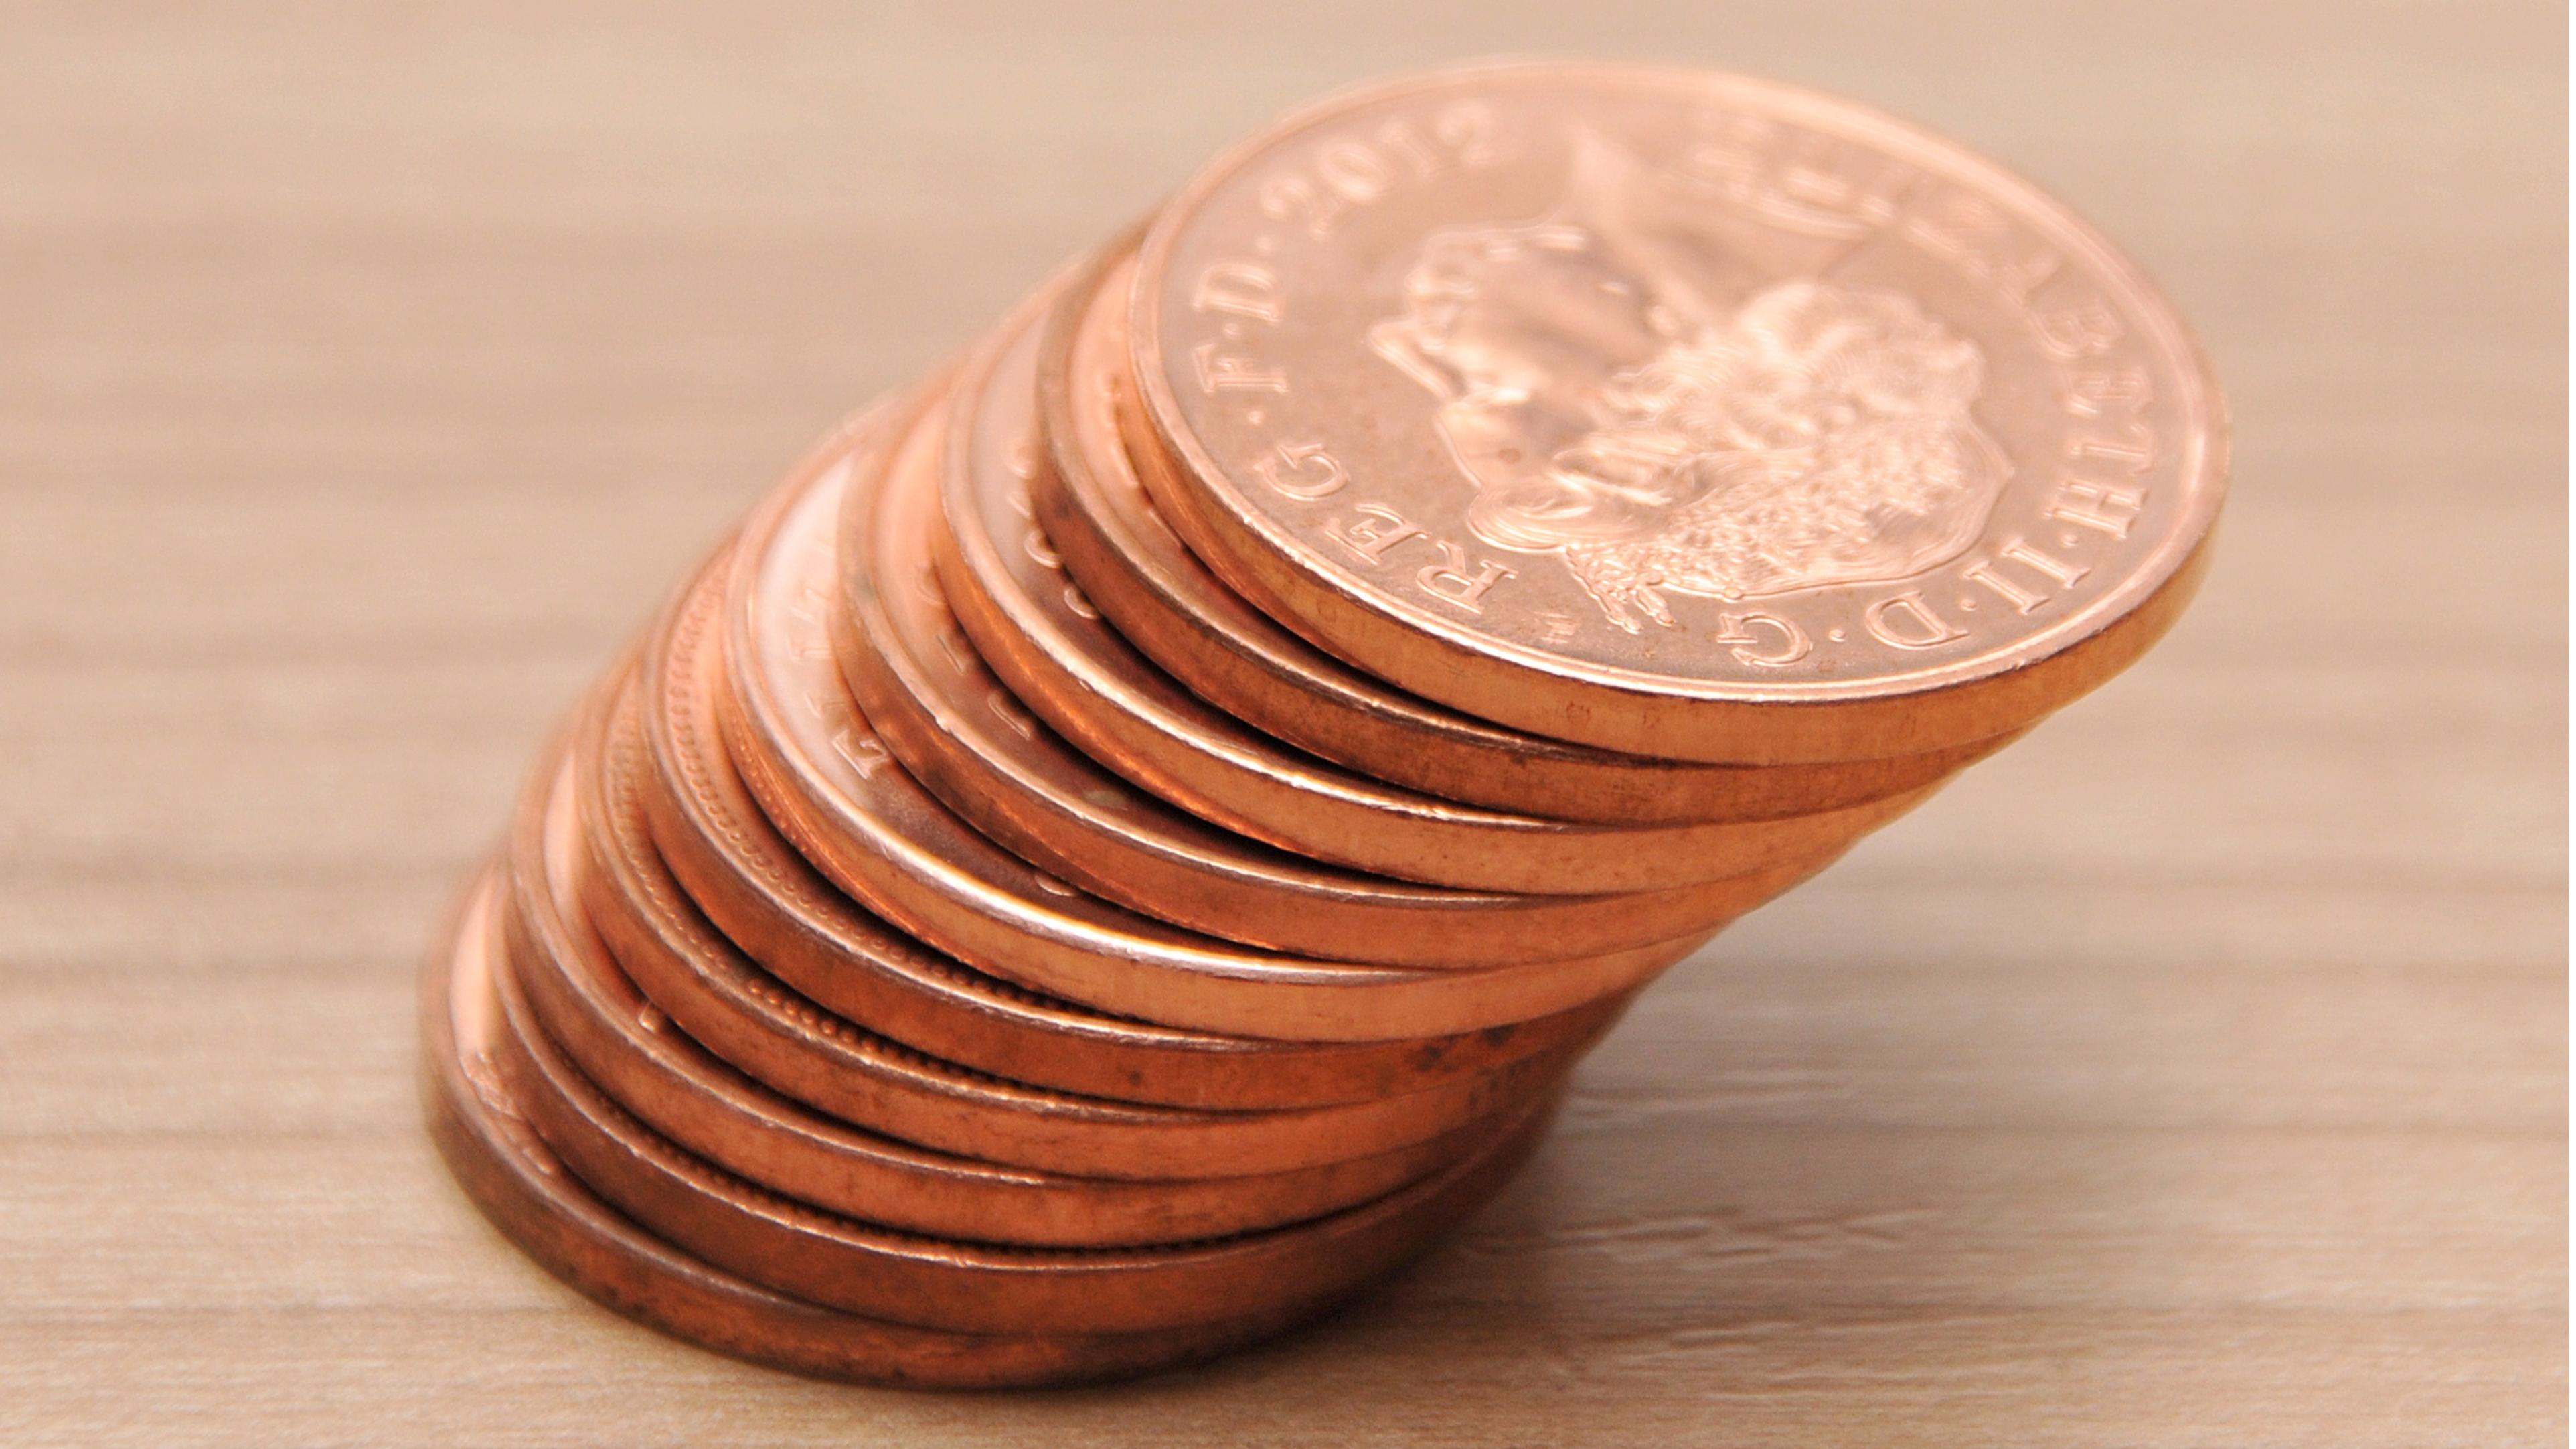 1p and 2p Coins 'Came Within Weeks Of Being Completely Scrapped'